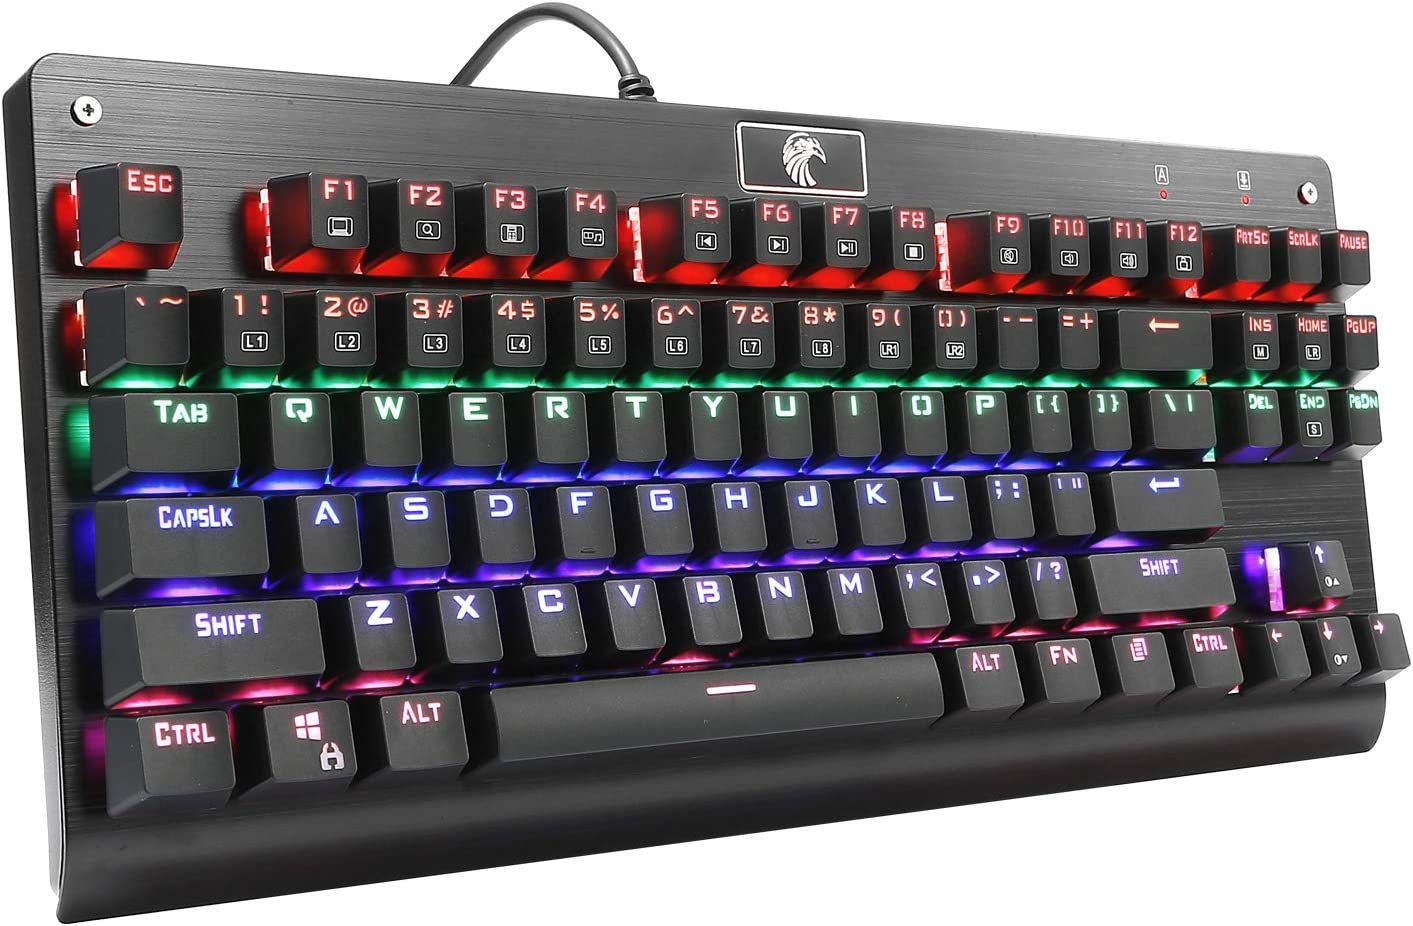 HUO JI Z-77 Mechanical Gaming Keyboard, Multicolor LED Backlit with Red Switches,Tenkeyless 87 Keys Anti-Ghosting for Mac PC, Black